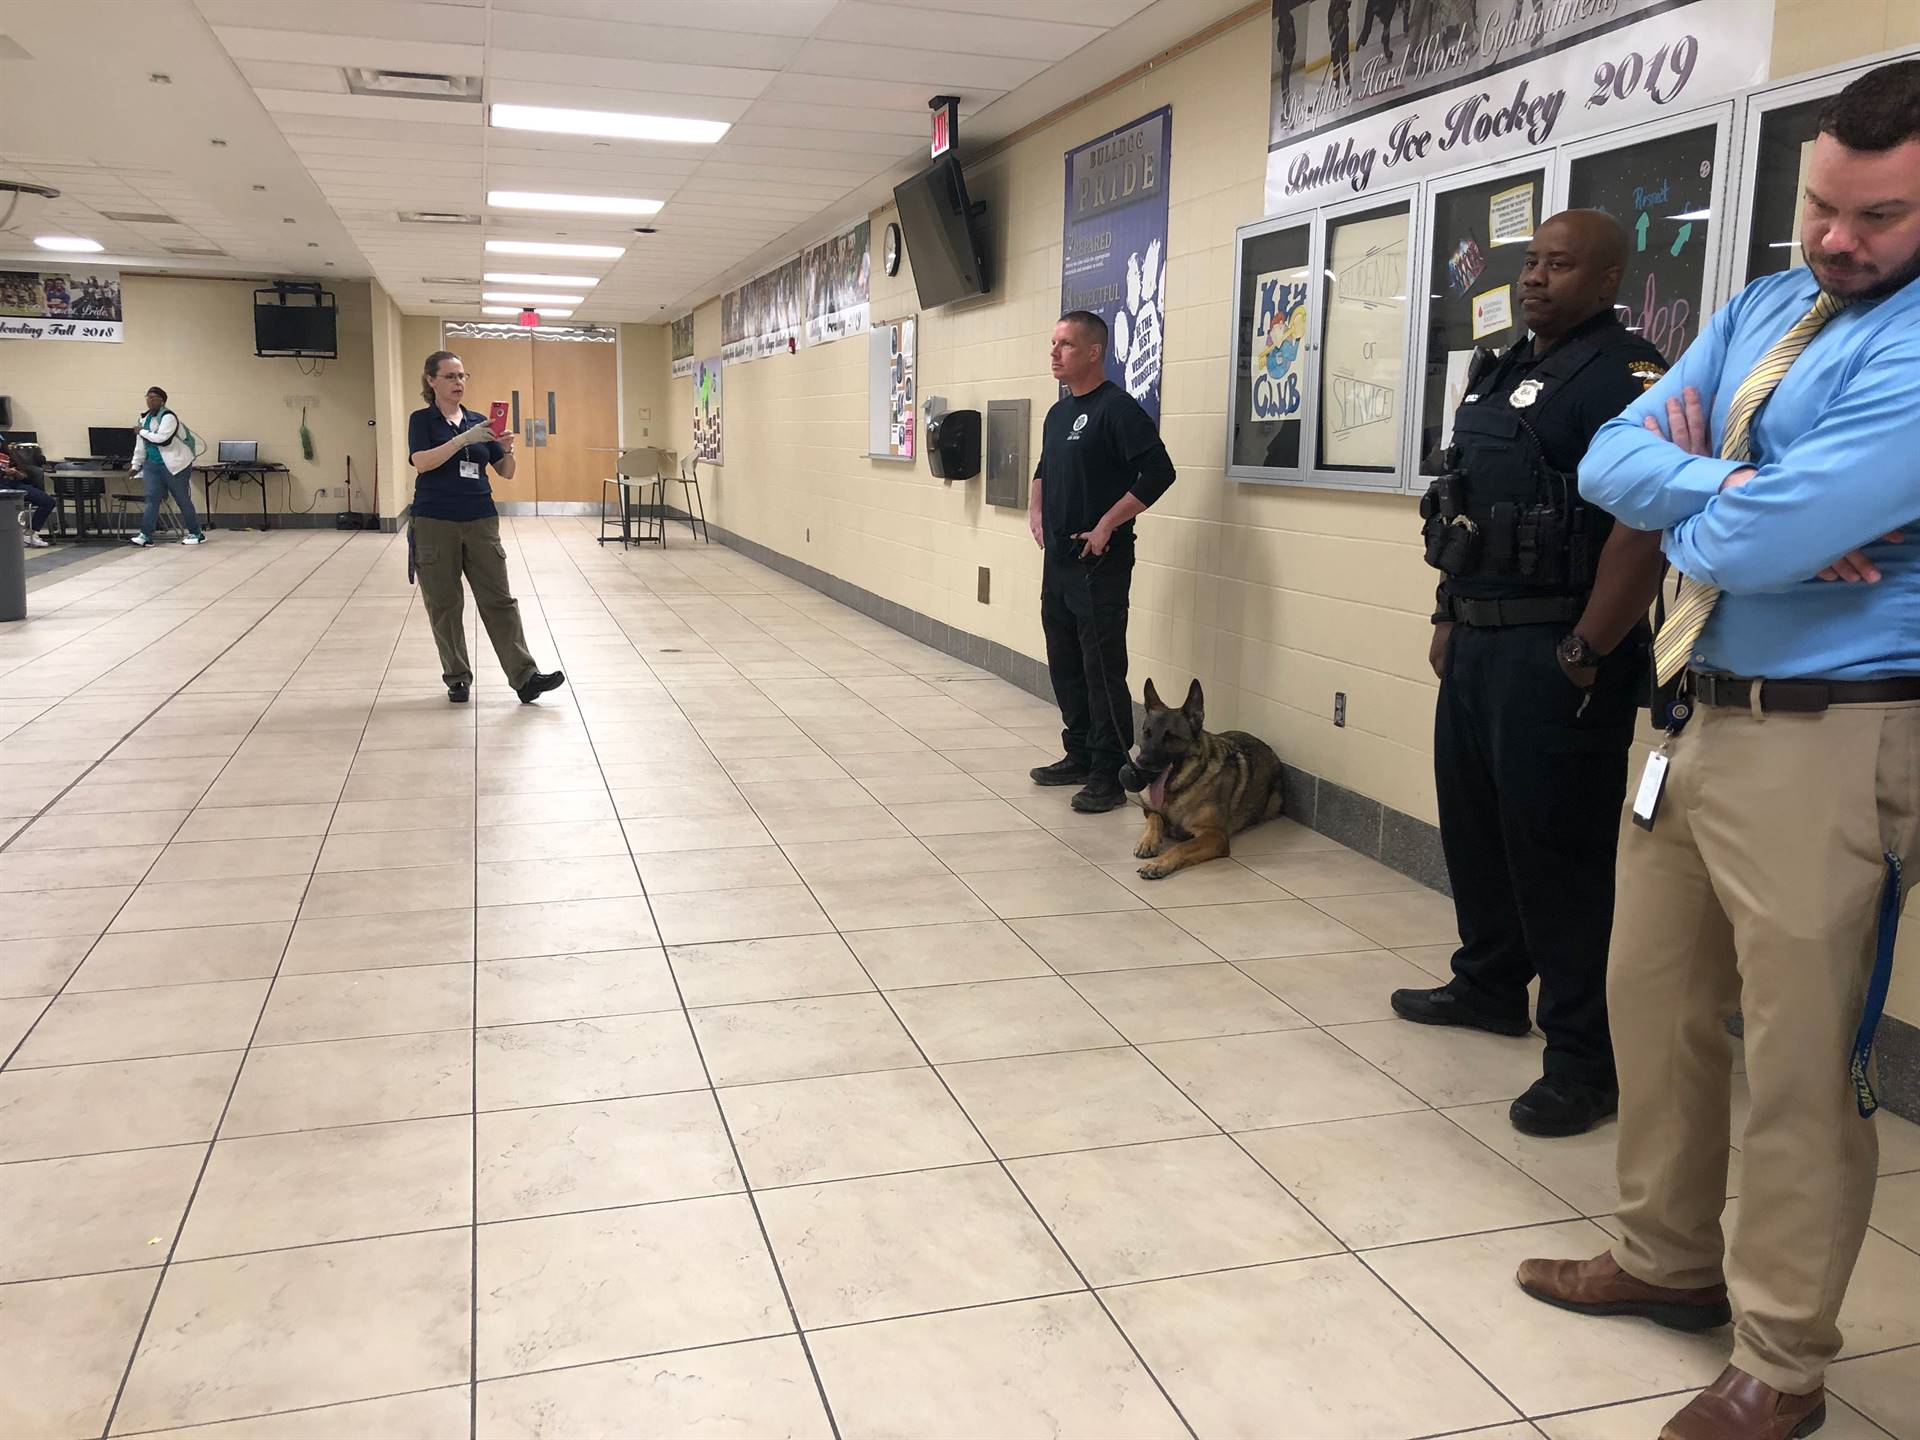 The Garfield Heights Police Department's K-9 unit visited the High School